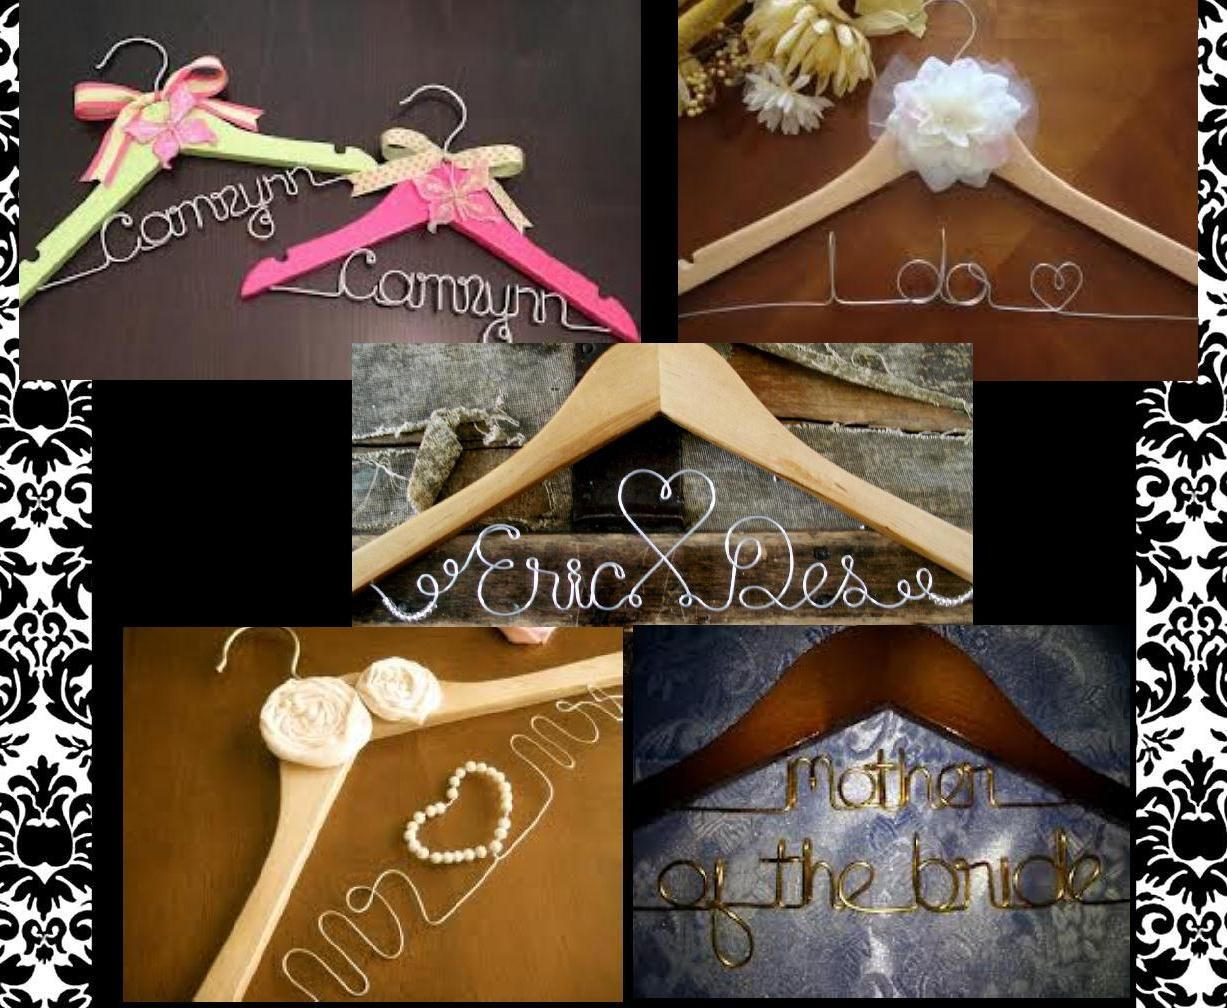 DIY Personalized Hangers Tutorial | Online fonts, Floral supplies ...